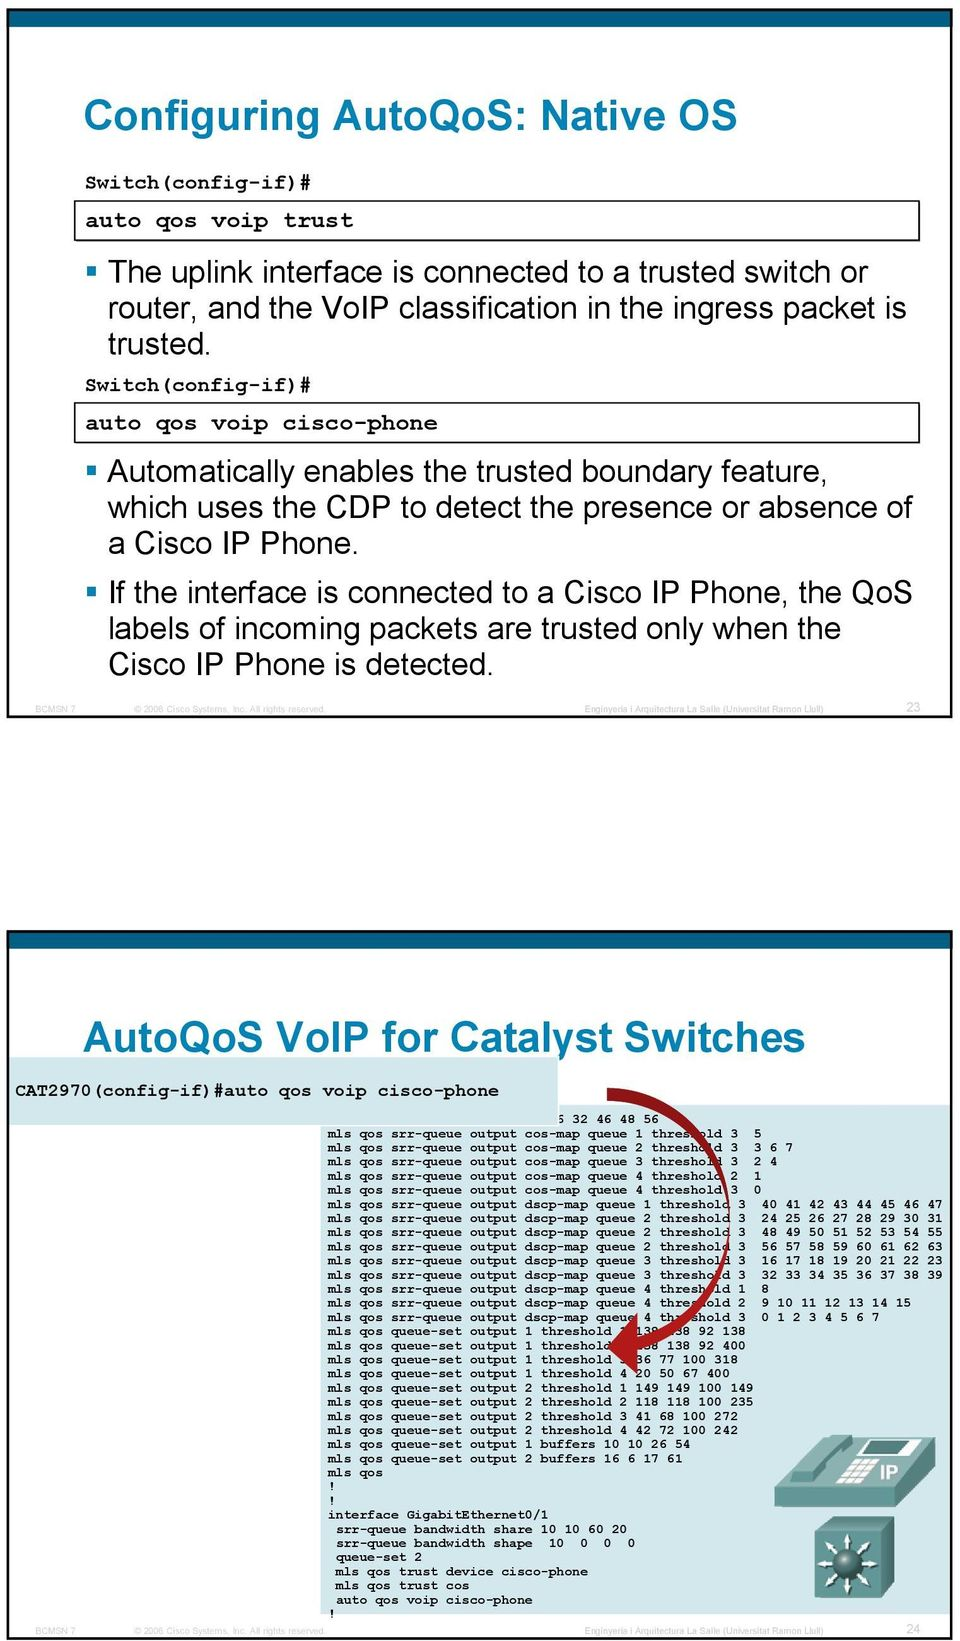 If the interface is connected to a Cisco IP Phone, the QoS labels of incoming packets are trusted only when the Cisco IP Phone is detected.